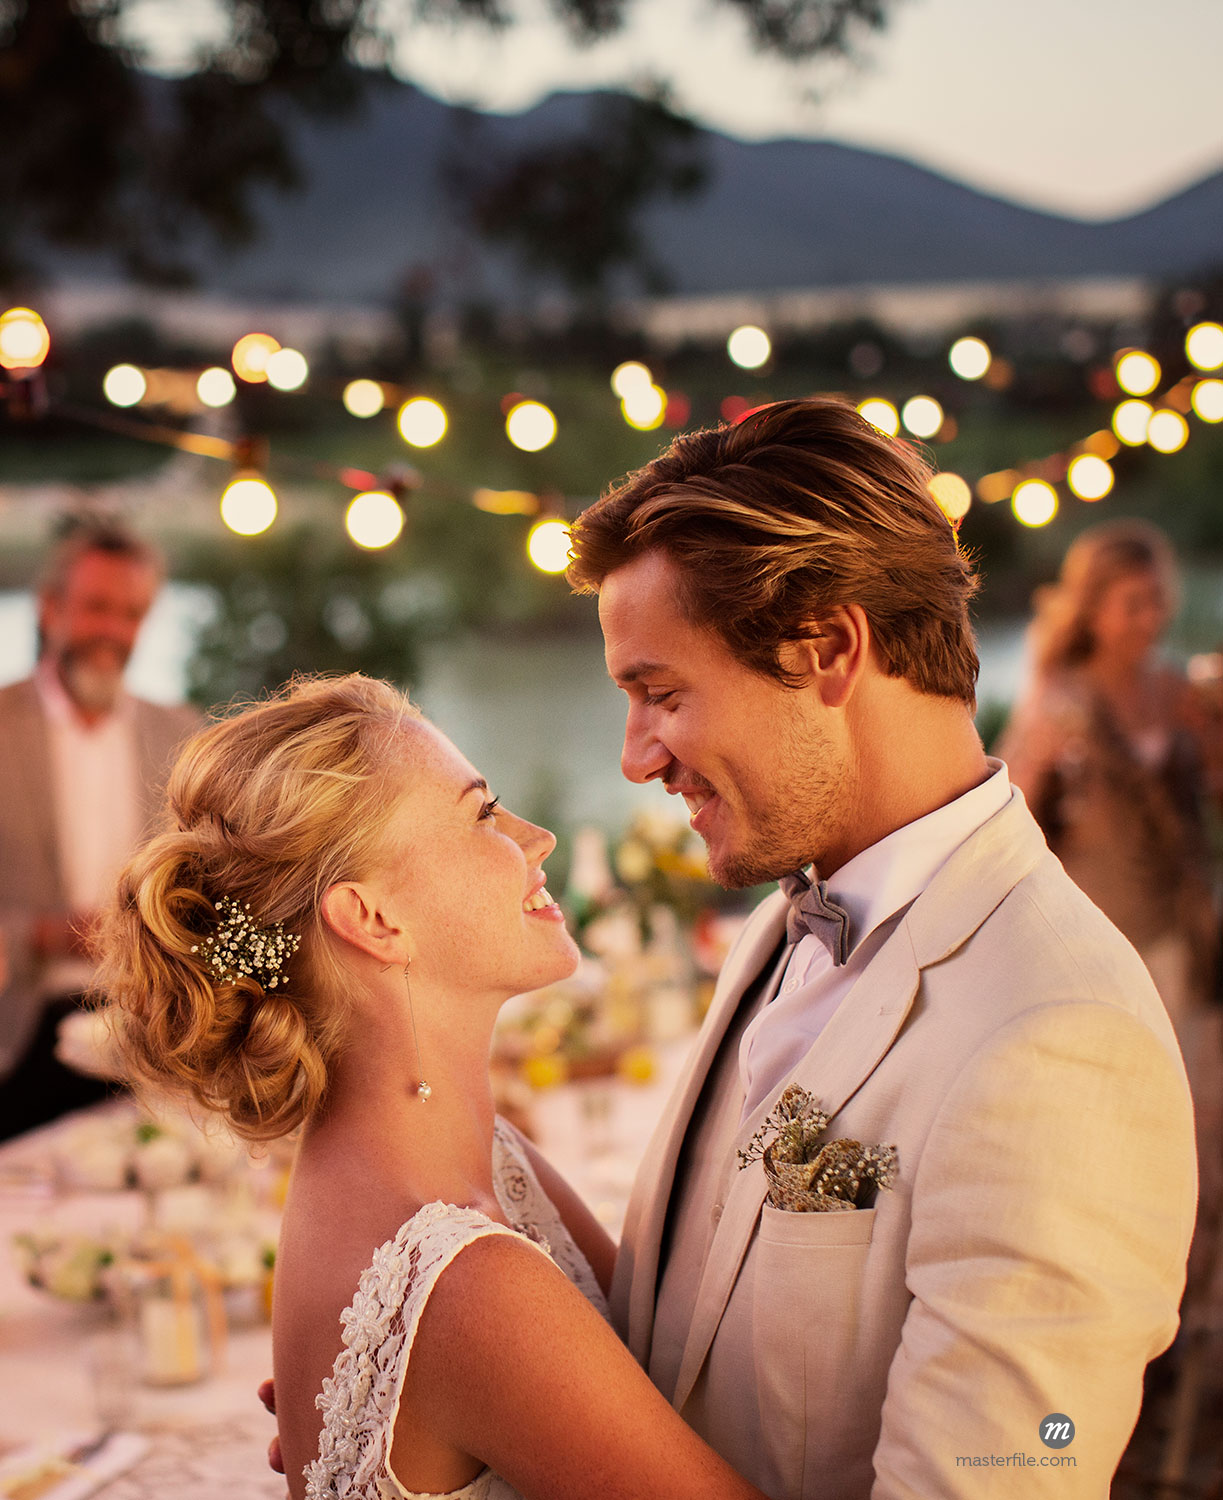 Portrait of young couple dancing in garden during wedding reception  © Caia Image / Masterfile